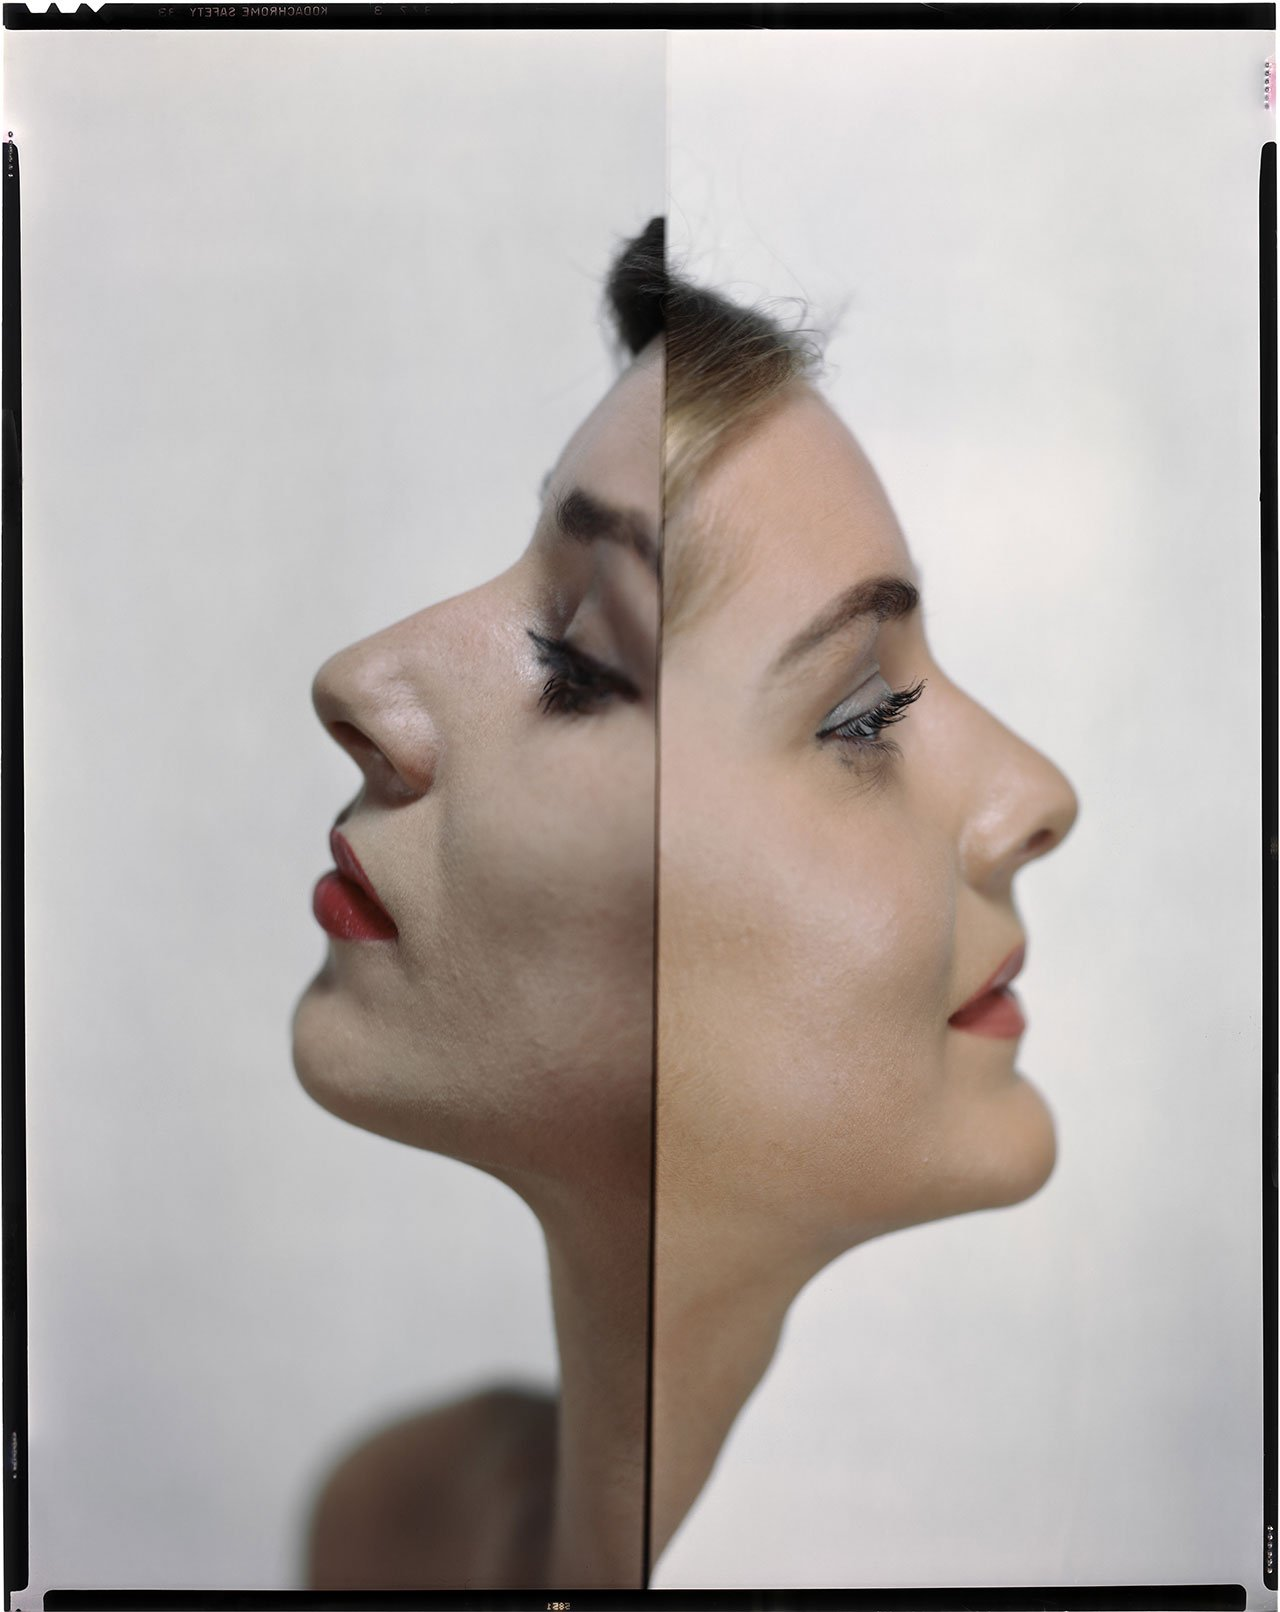 Variant picture for Vogue US from 1st May, 1947 © The Estate of Erwin Blumenfeld.